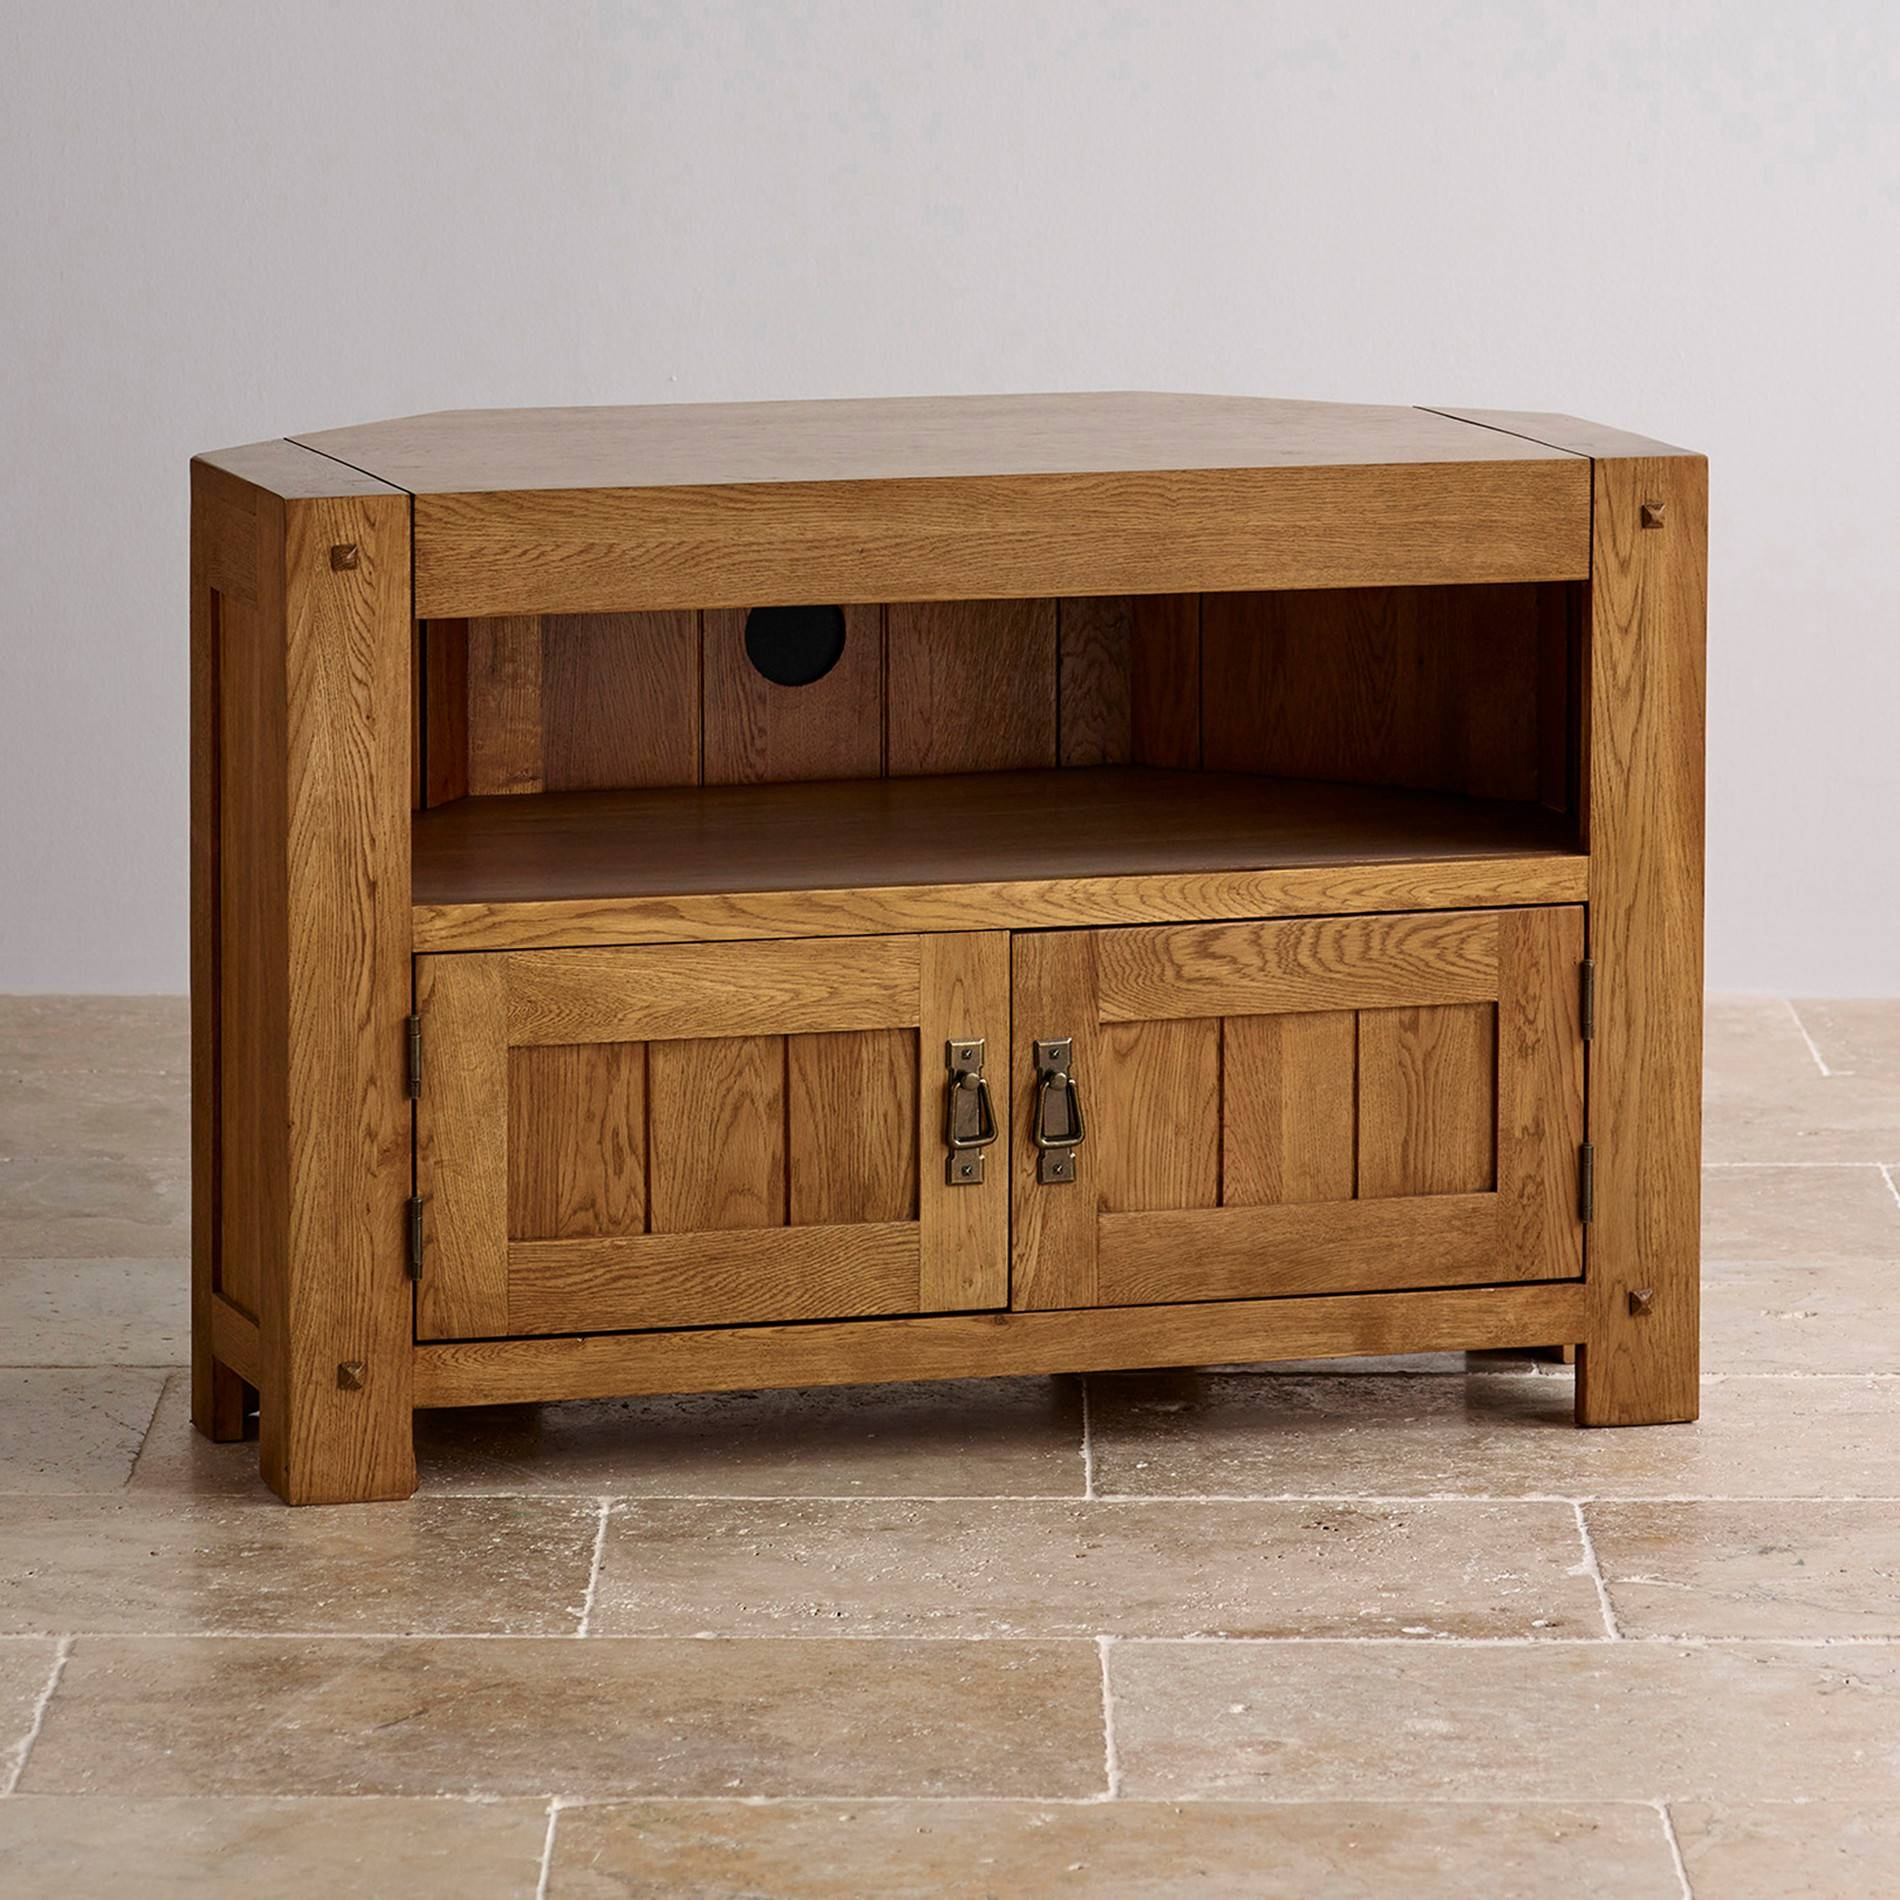 Quercus Corner Tv Cabinet In Rustic Oak | Oak Furniture Land Pertaining To Tv Cabinets Corner Units (View 3 of 15)